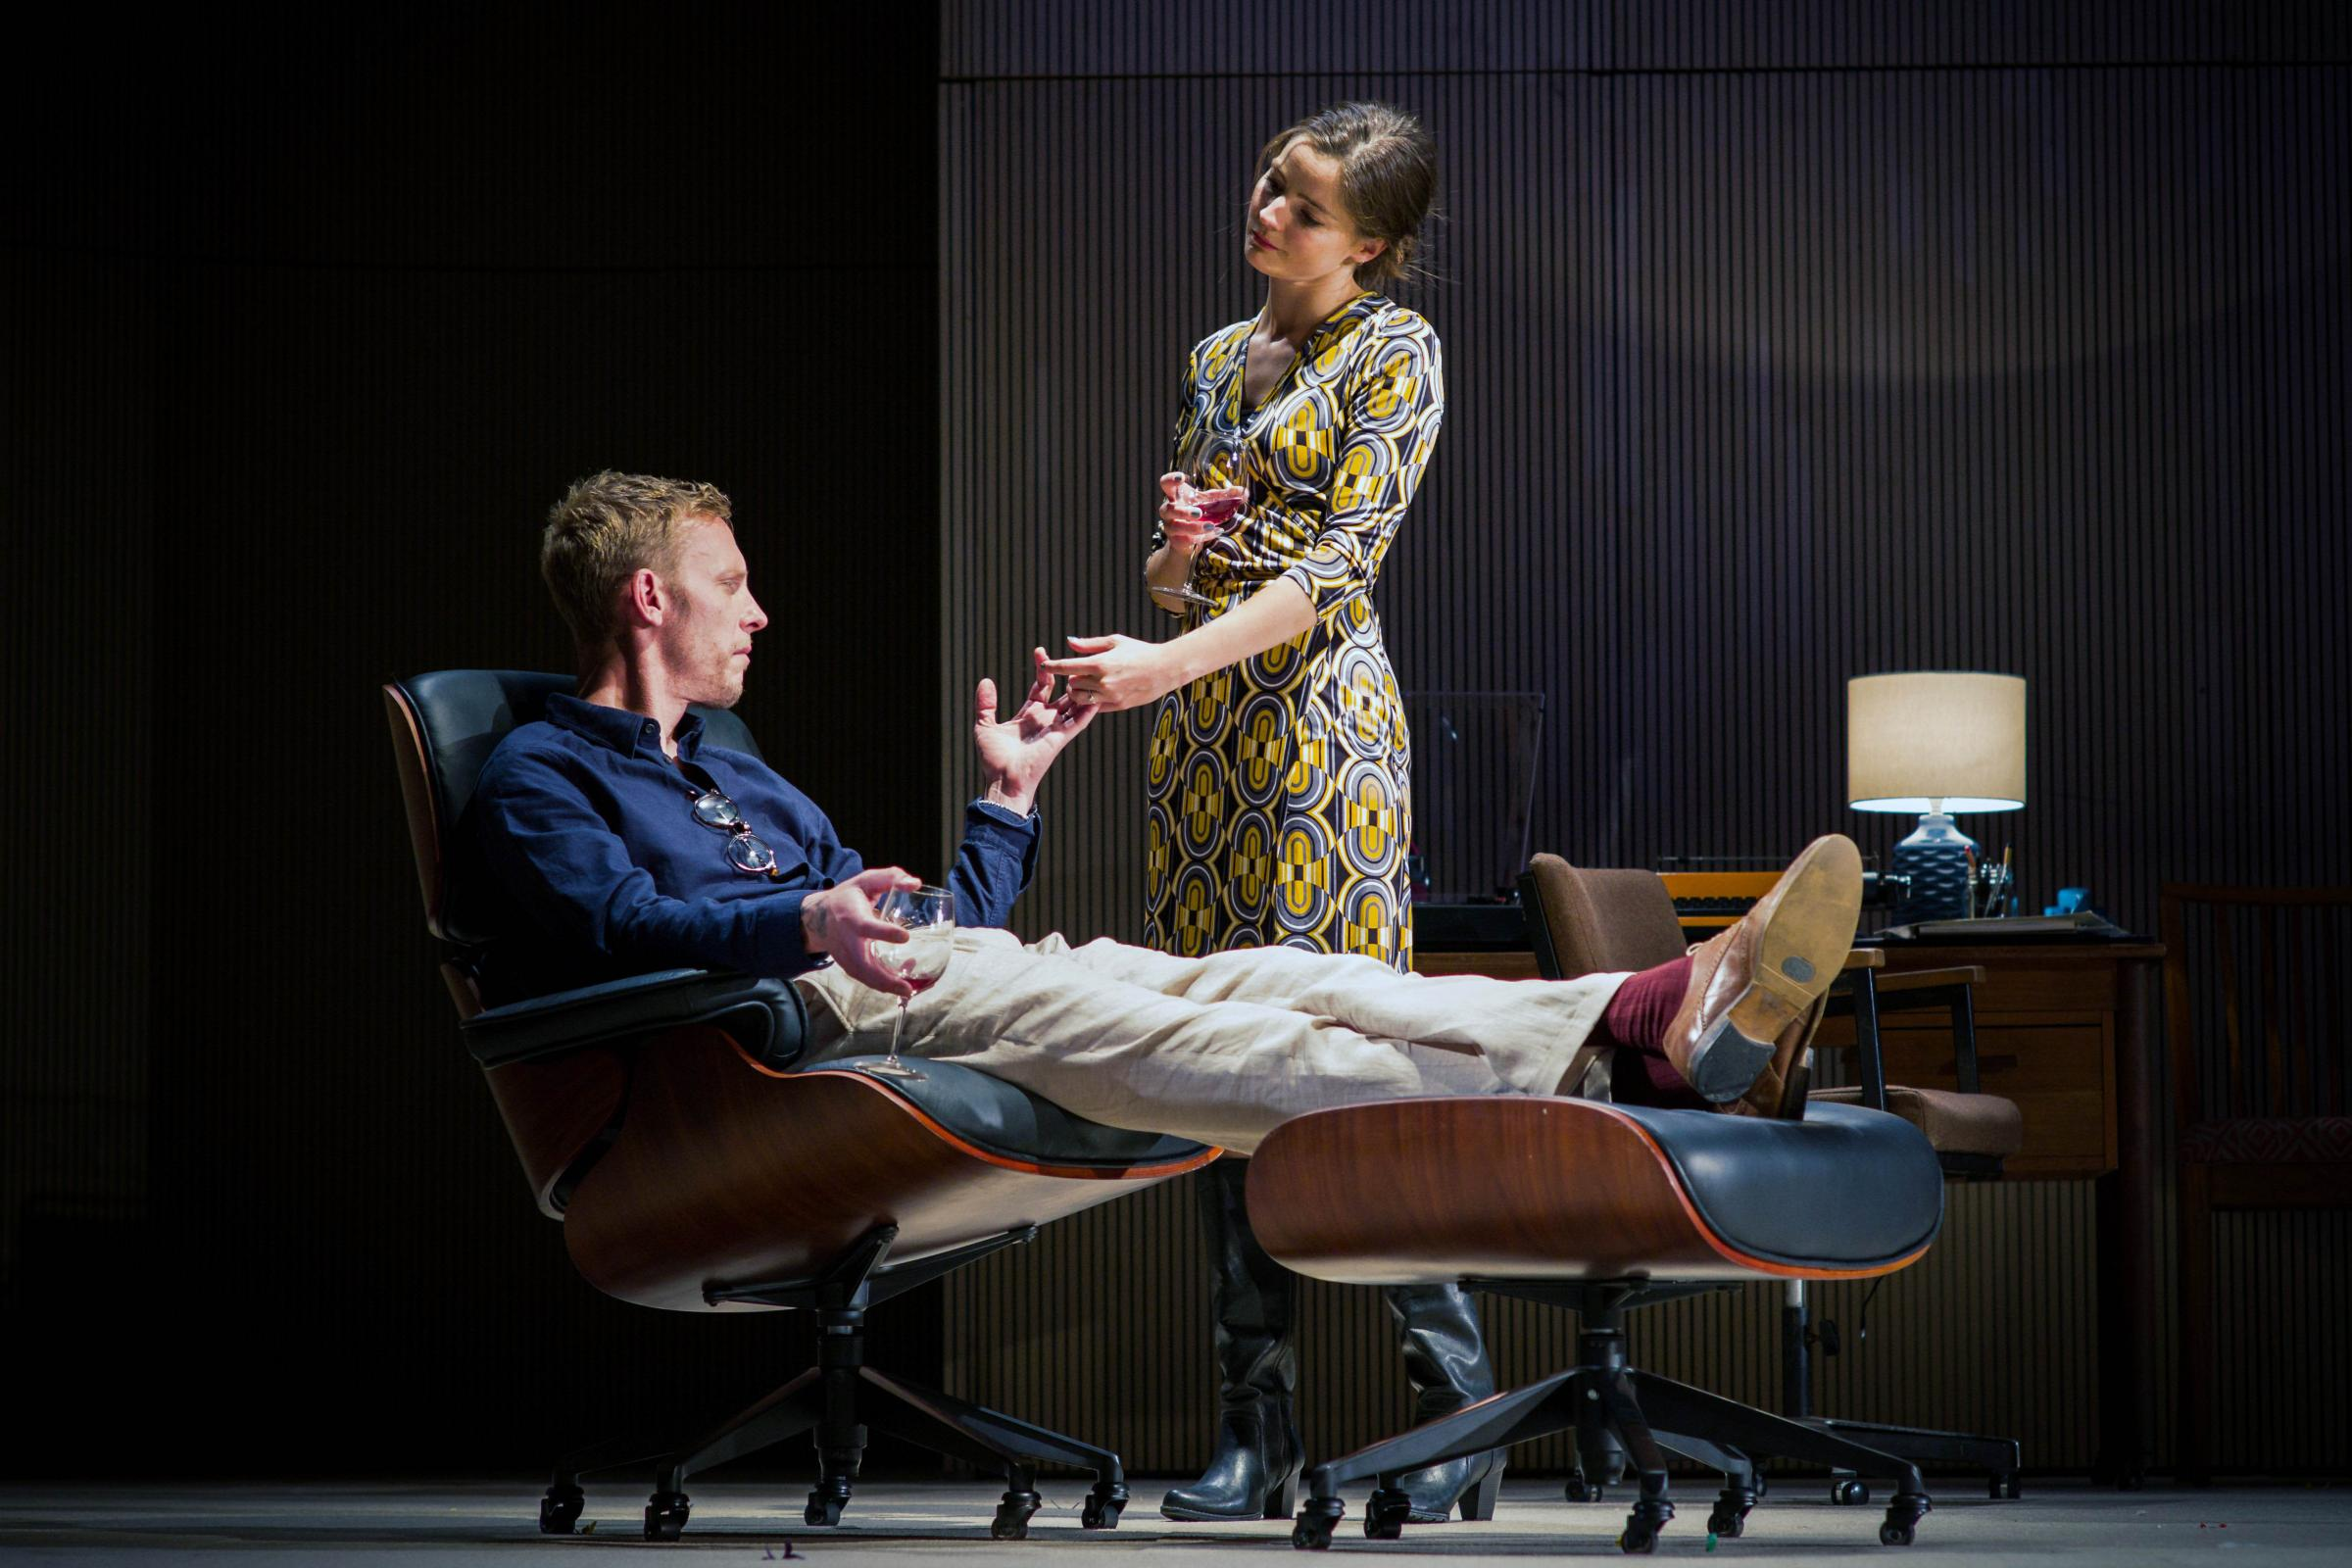 Laurence Fox (as Henry) and Flora Spencer-Longhurst (as Annie). Dress Rehearsal of The Real Thing by Tom Stoppard (a co-production by Cambridge Arts Theatre with Theatre Royal Bath and Rose Theatre, Kingston). Cambridge Arts Theatre. Cambridge, Cambridges